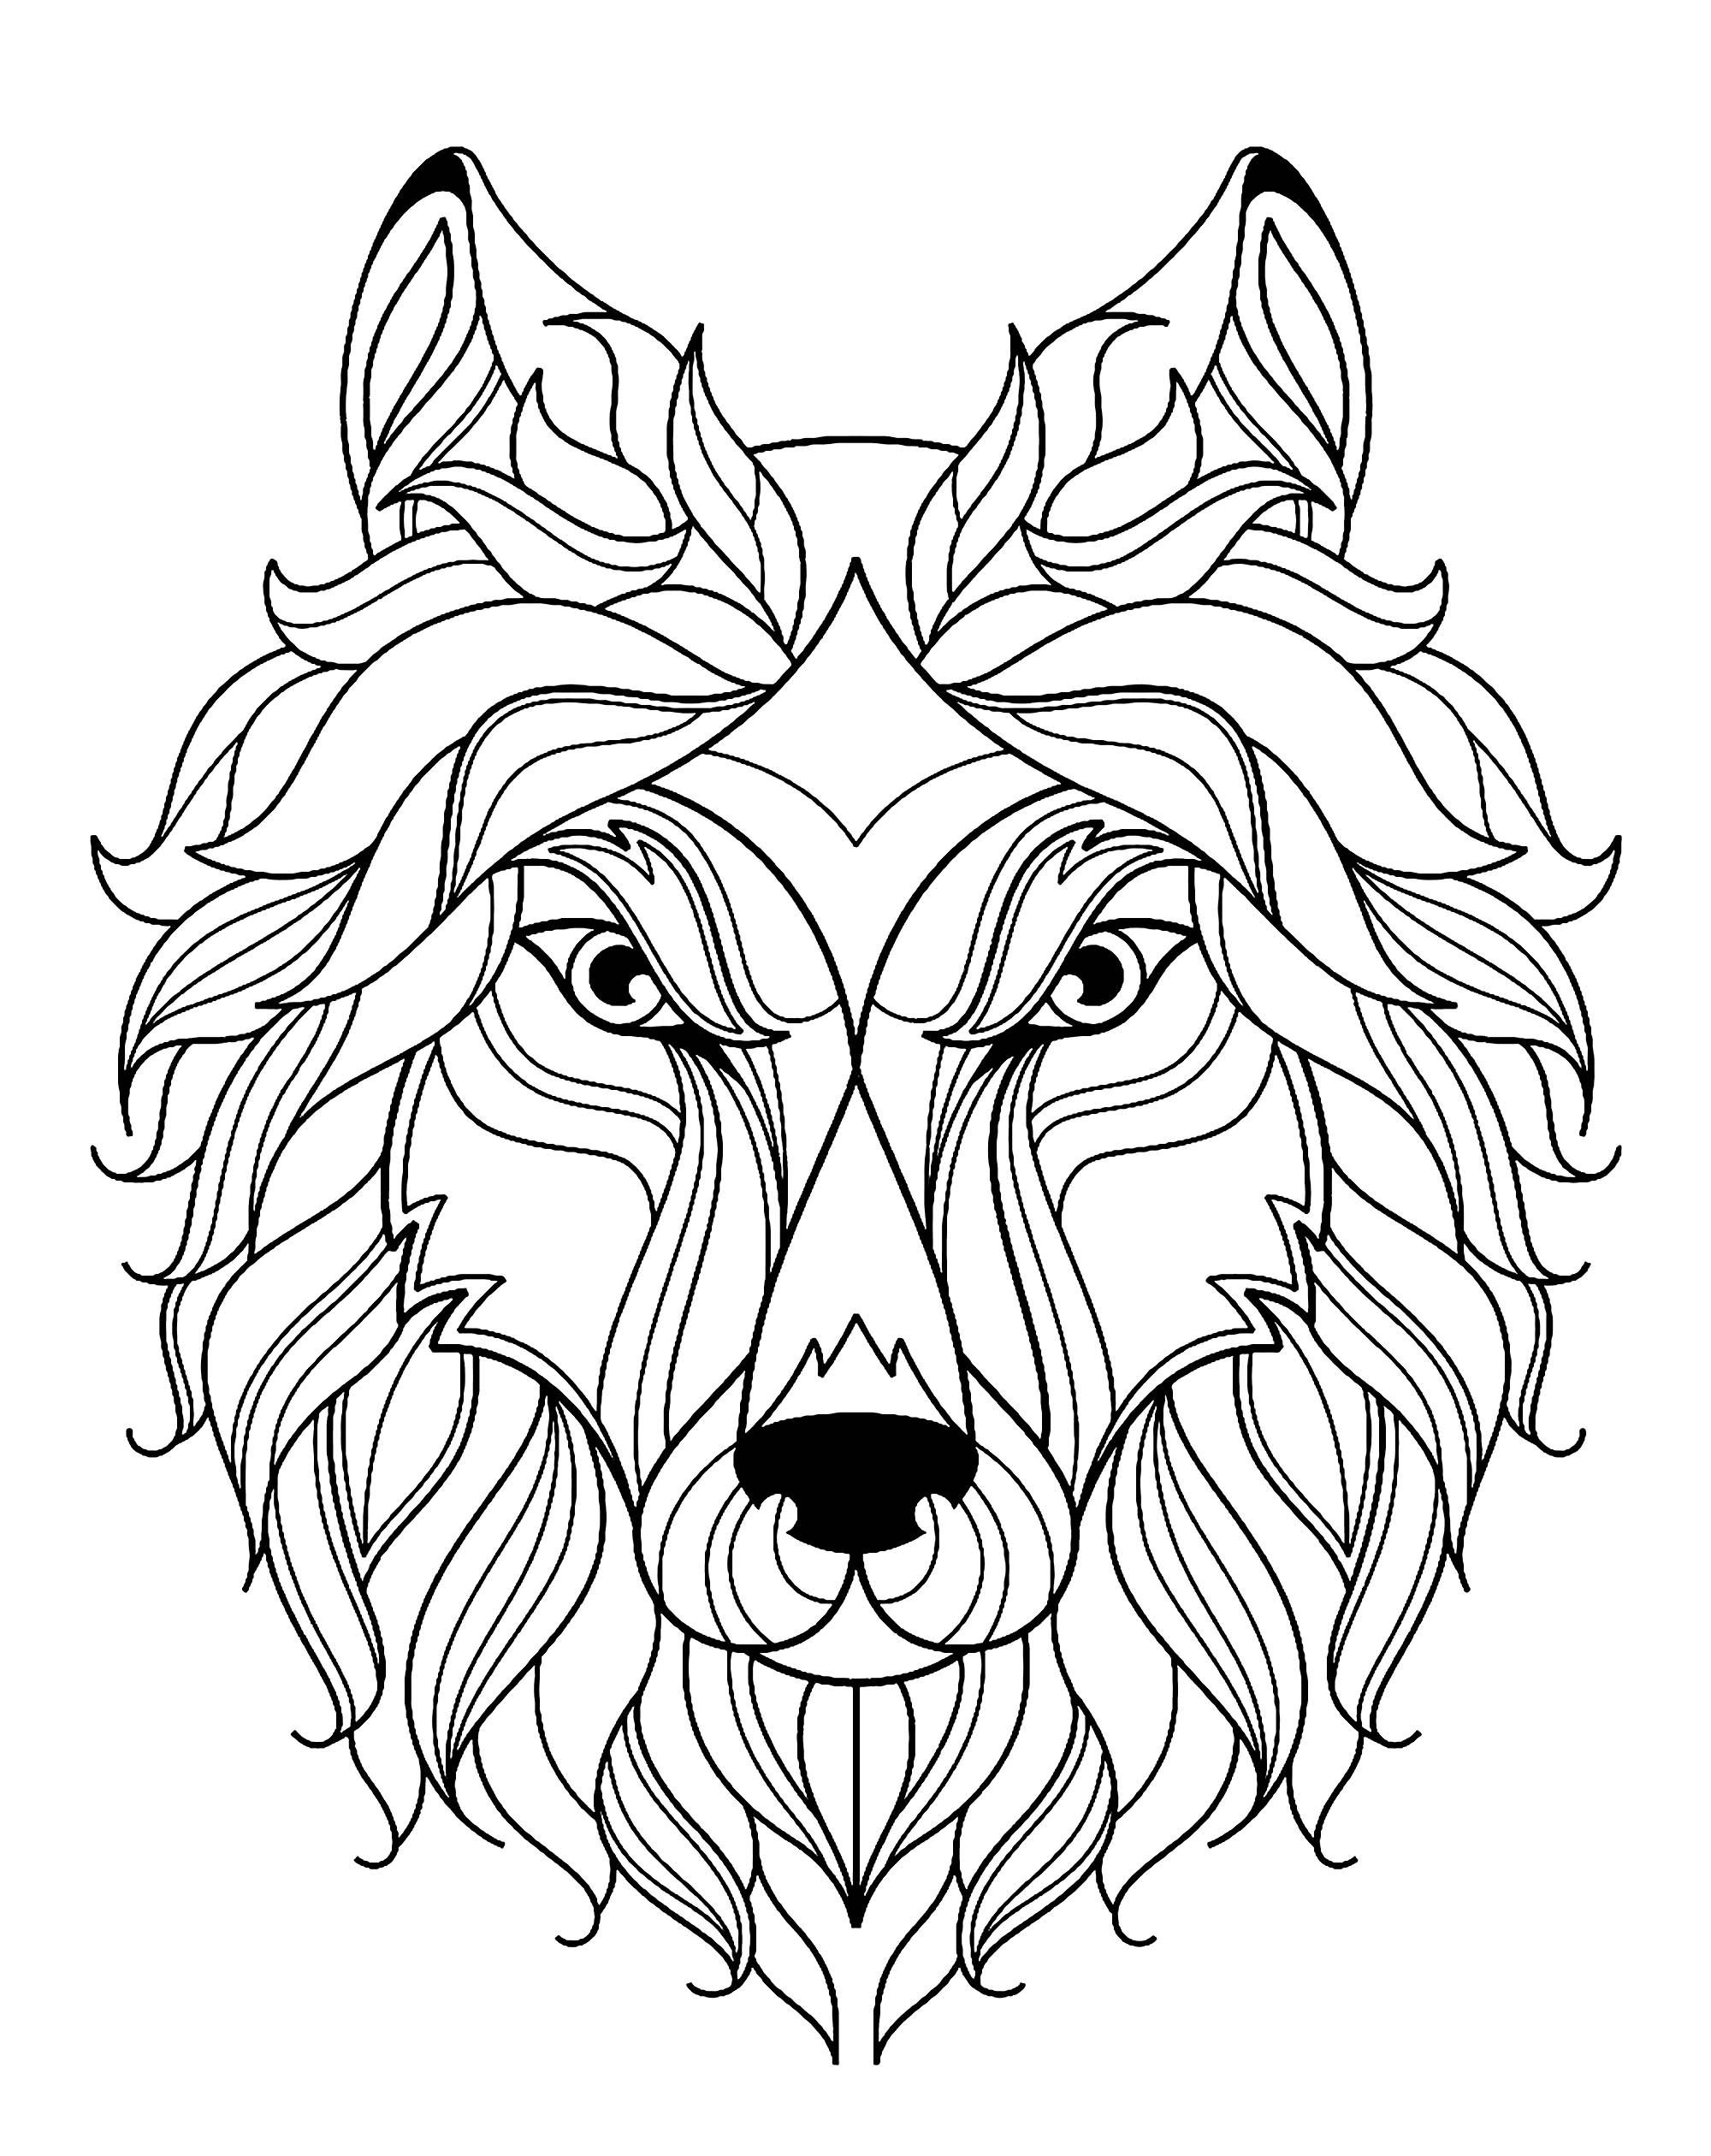 Big Wolf Head Simple Wolves Coloring Pages For Adults Just